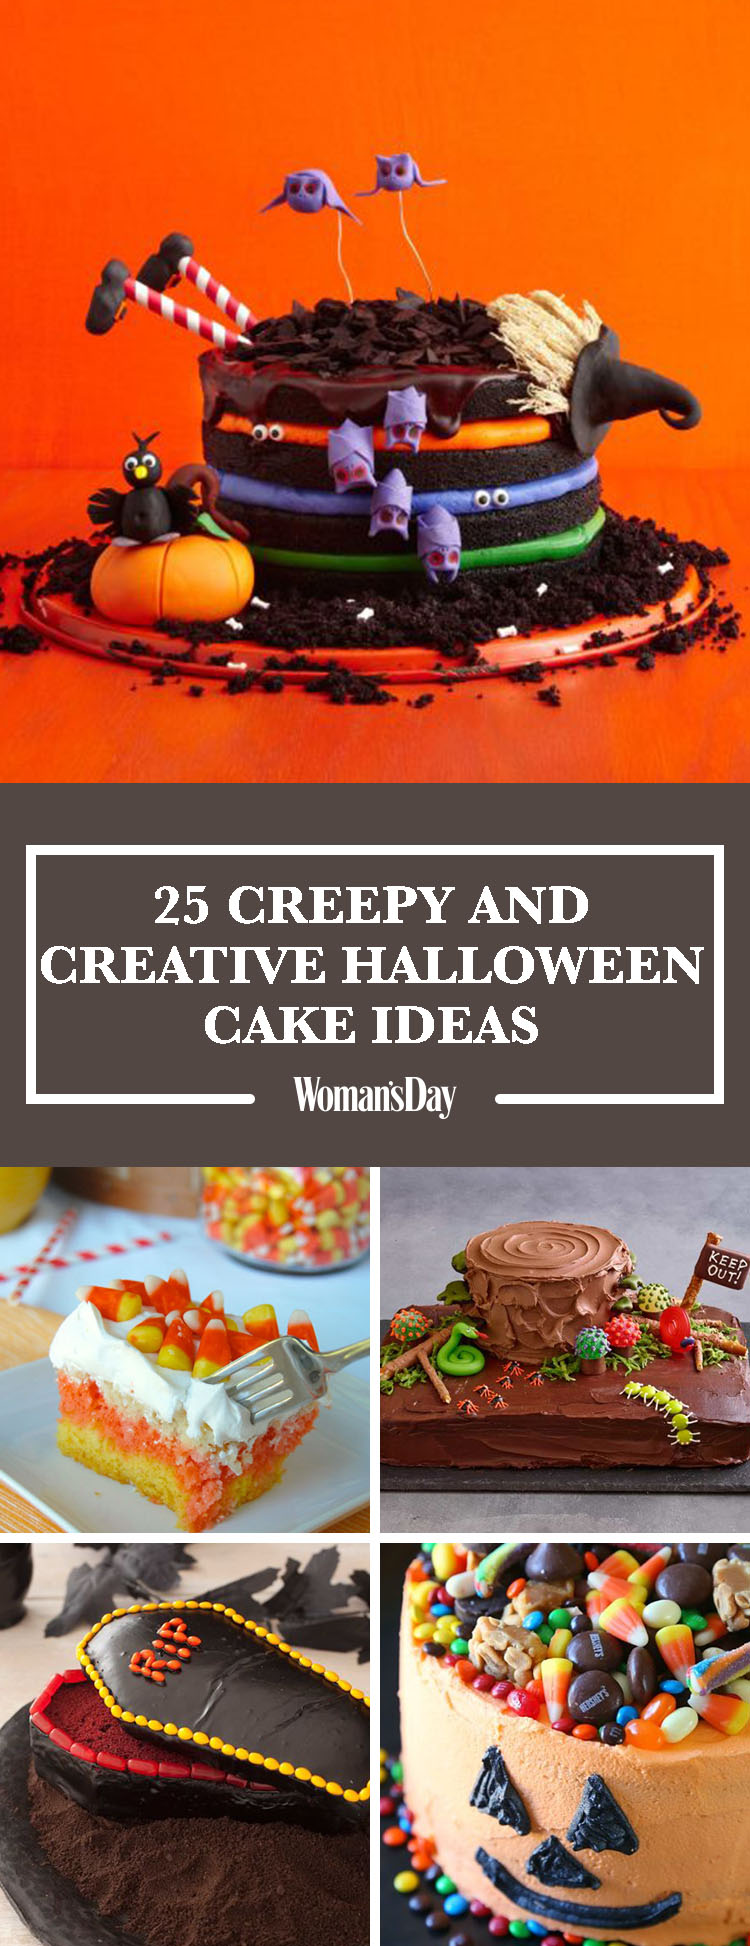 30 easy halloween cakes recipes ideas for halloween cake decorating - Easy Halloween Cake Decorating Ideas